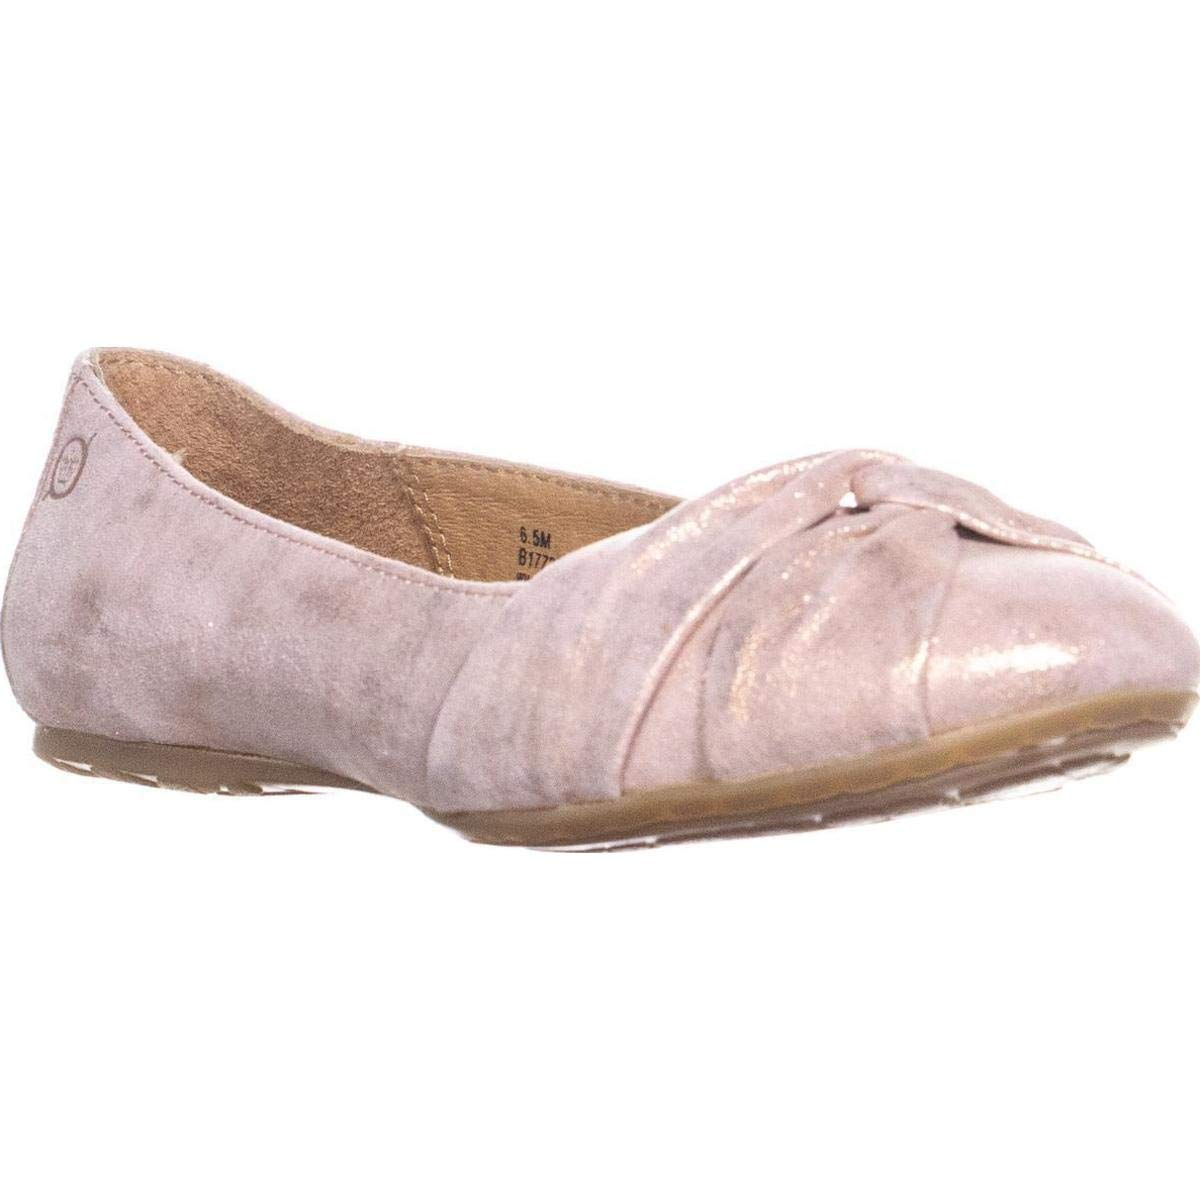 Light Pink Born Womens Lilly Leather Closed Toe Slide Flats